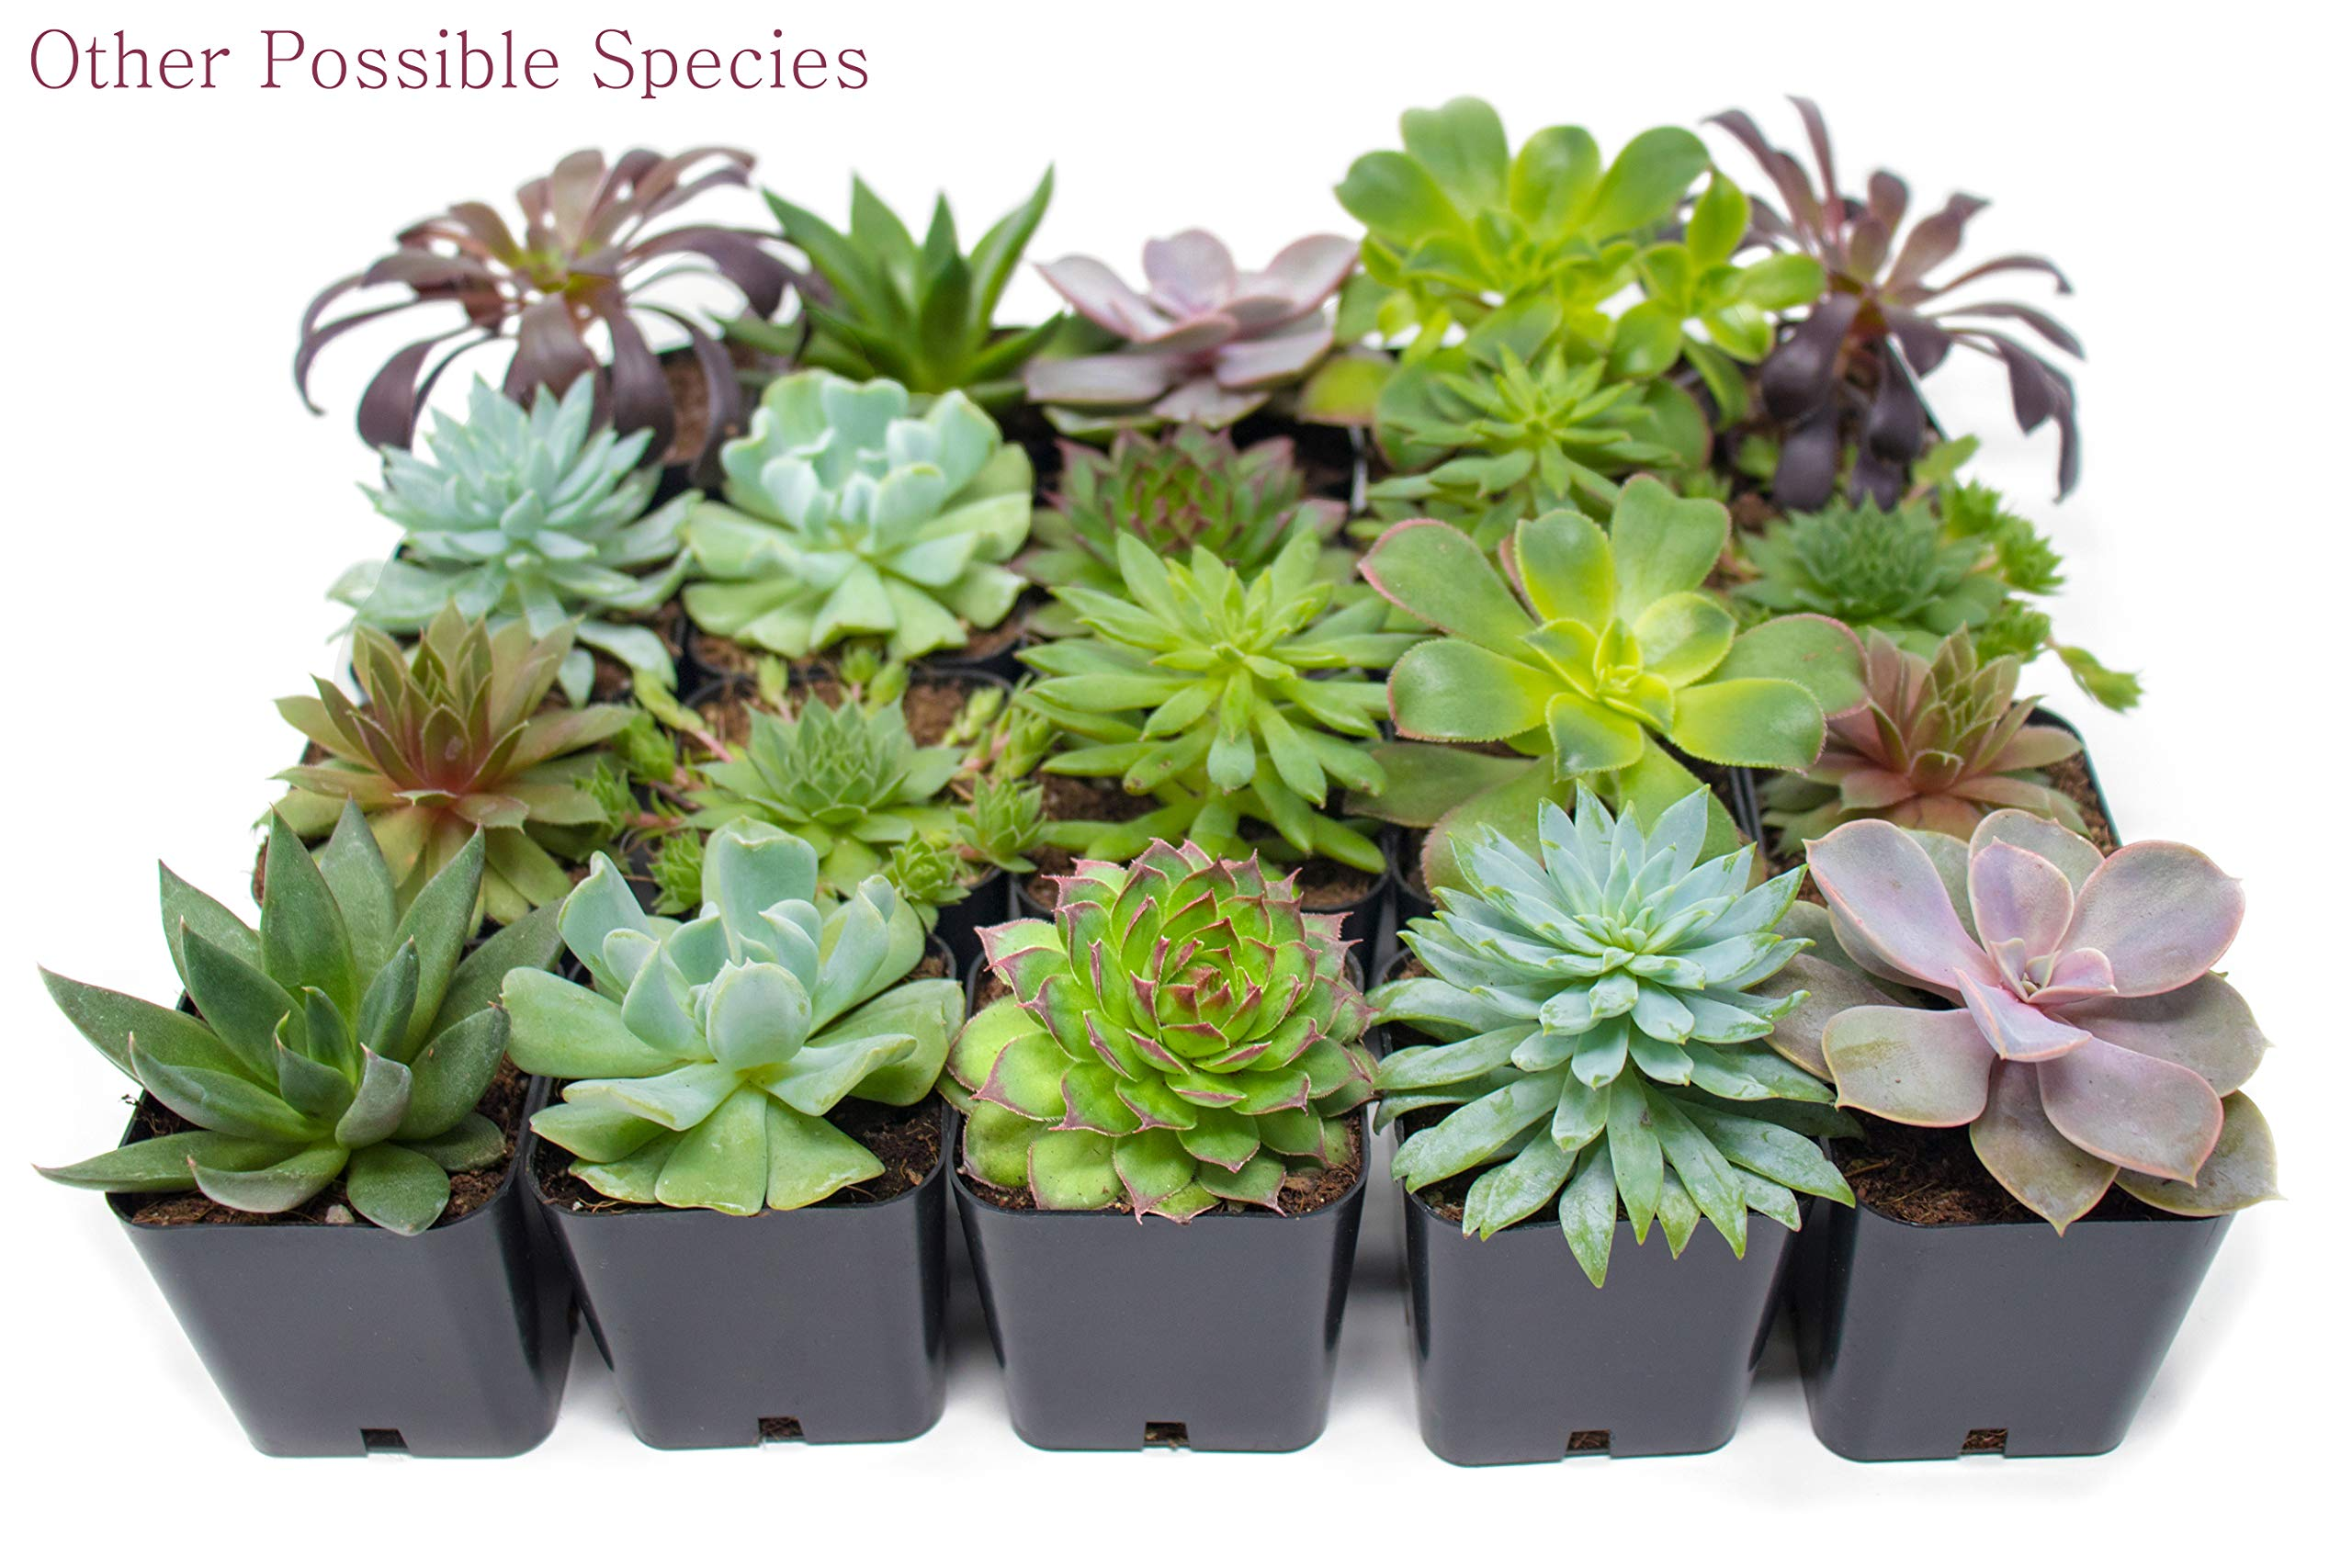 Succulent Plants (5 Pack), Fully Rooted in Planter Pots with Soil - Real Live Potted Succulents / Unique Indoor Cactus… 8 HAND SELECTED: Every pack of succulents we send is hand-picked. You will receive a unique collection of species that are FULLY ROOTED IN 2 INCH POTS, which will be similar to the product photos (see photo 2 for scale). Note that we rotate our nursery stock often, so the exact species we send changes every week. THE EASIEST HOUSE PLANTS: More appealing than artificial plastic or fake faux plants, and care is a cinch. If you think you can't keep houseplants alive, you're wrong; our succulents don't require fertilizer and can be planted in a decorative pot of your choice within seconds. DIY HOME DECOR: The possibilities are only limited by your imagination; display them in a plant holder, a wall mount, a geometric glass vase, or even in a live wreath. Because of their amazingly low care requirements, they can even make the perfect desk centerpiece for your office.